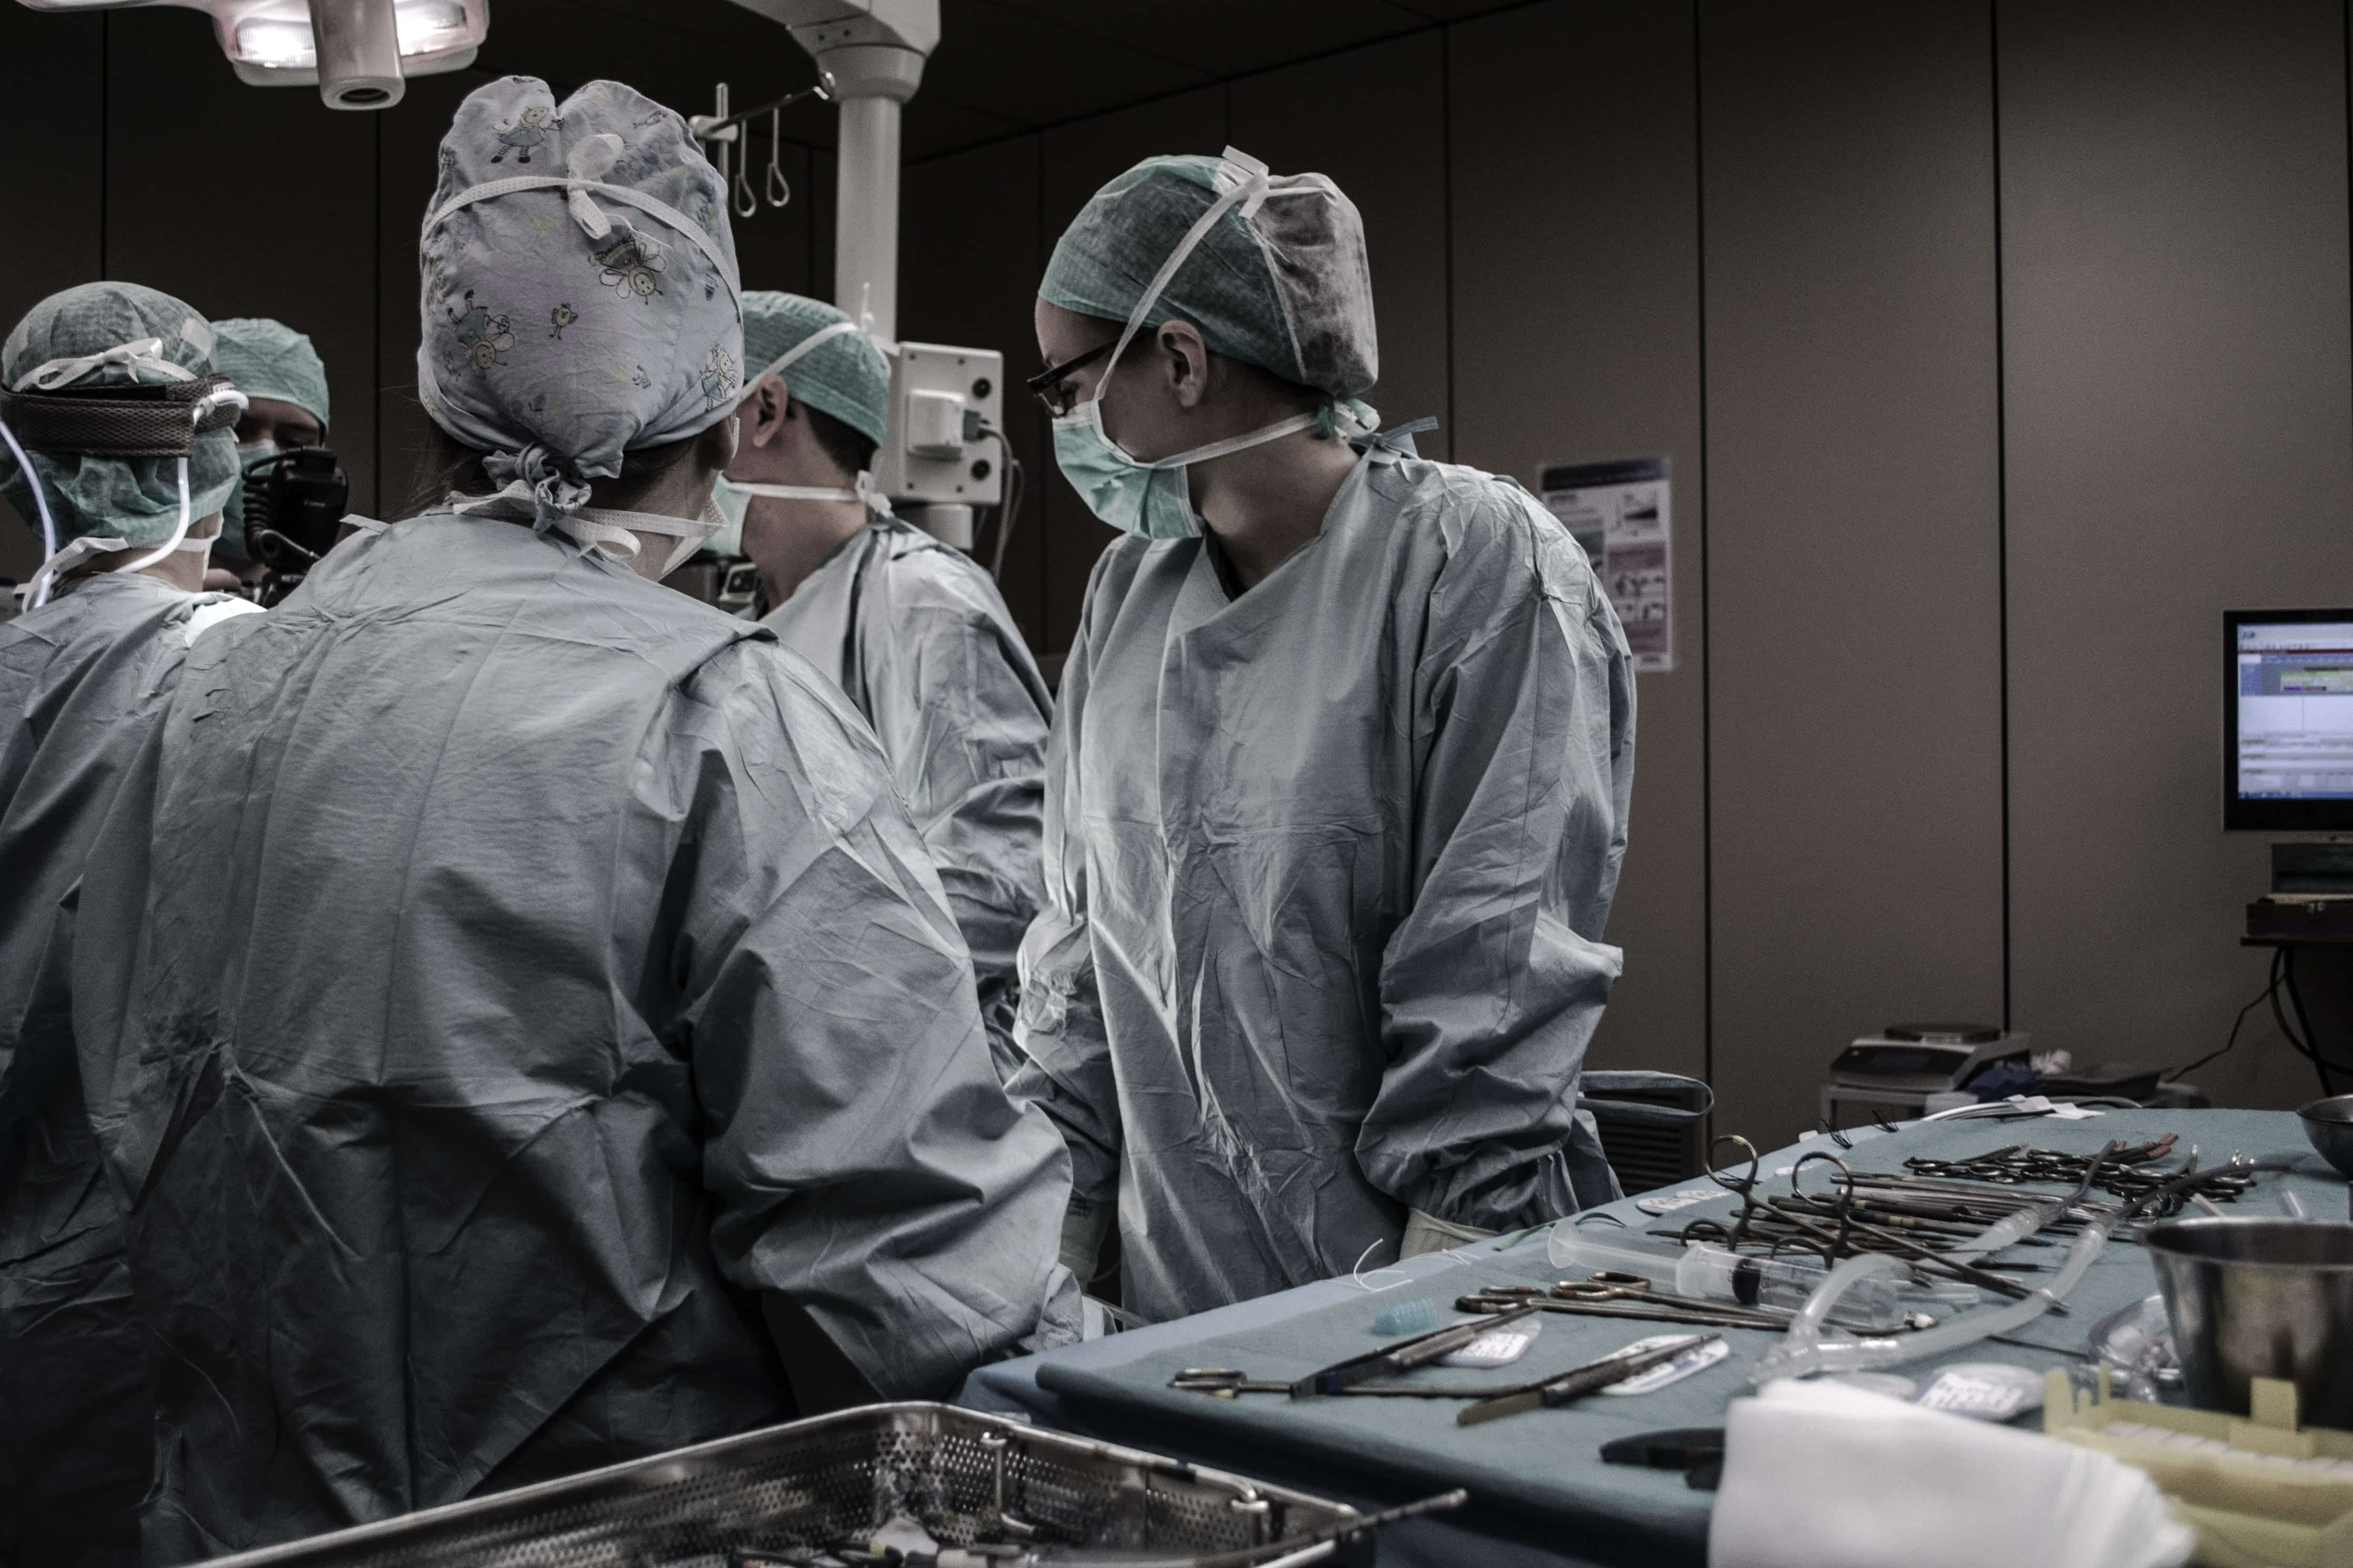 Medical professionals working; image by Piron Guillaume, via Unsplash.com.